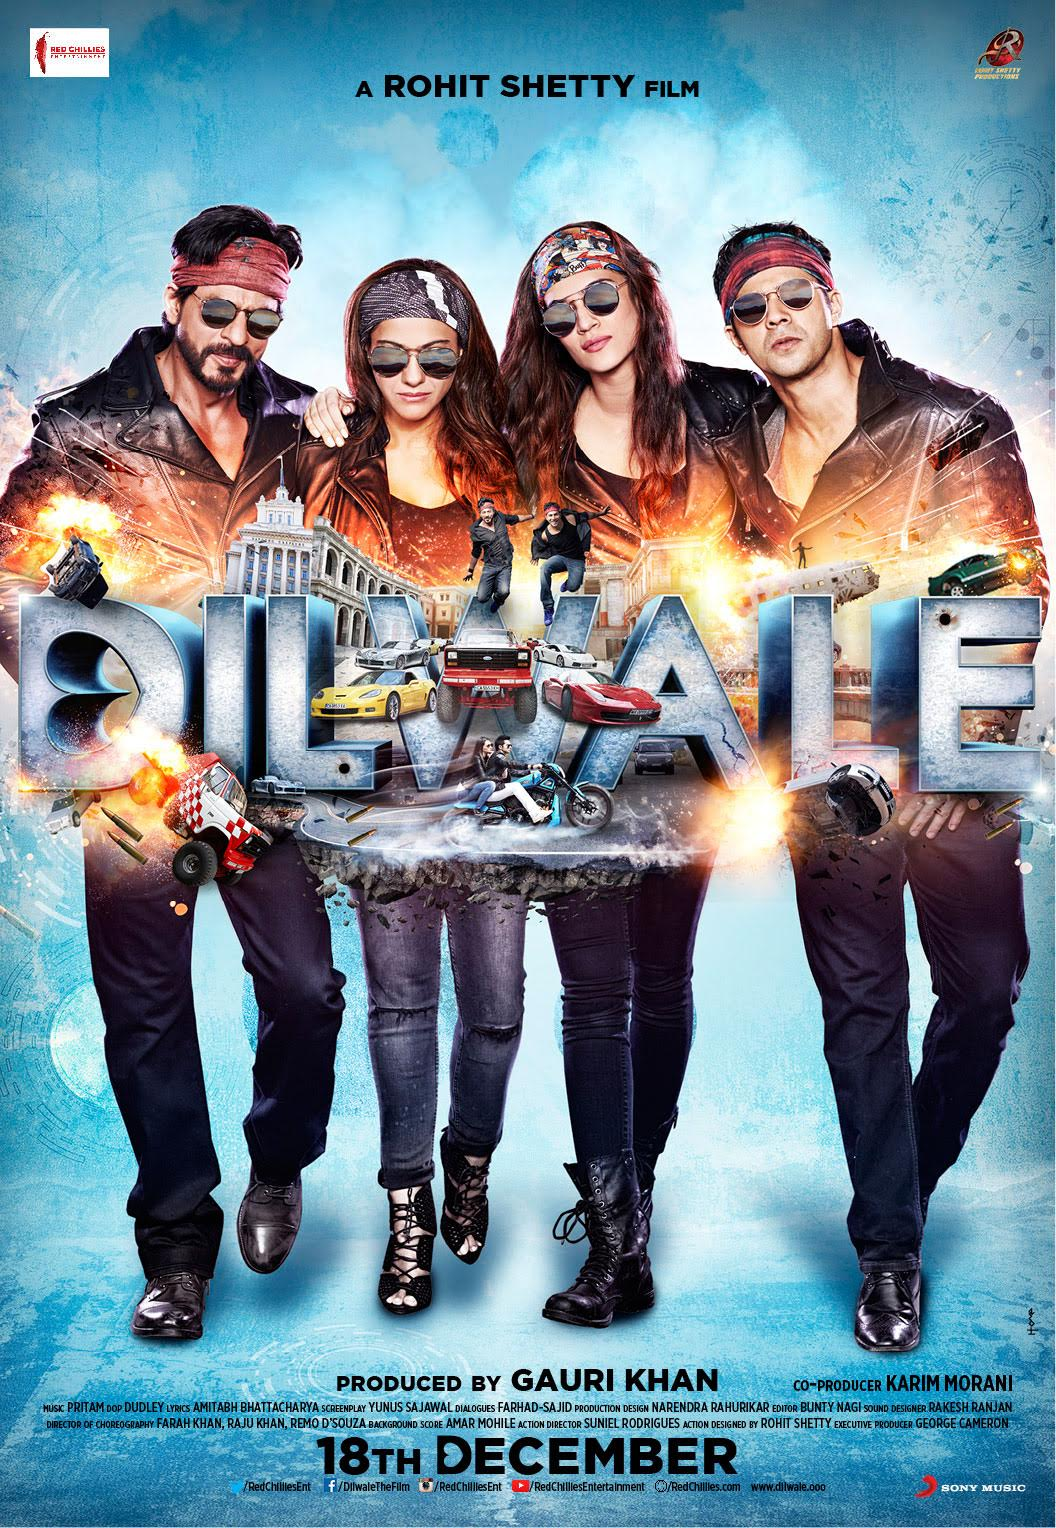 Check Out SRK Kajol Varun And Kriti In These Dilwale Movie Posters Bollywood Film Fame Canada